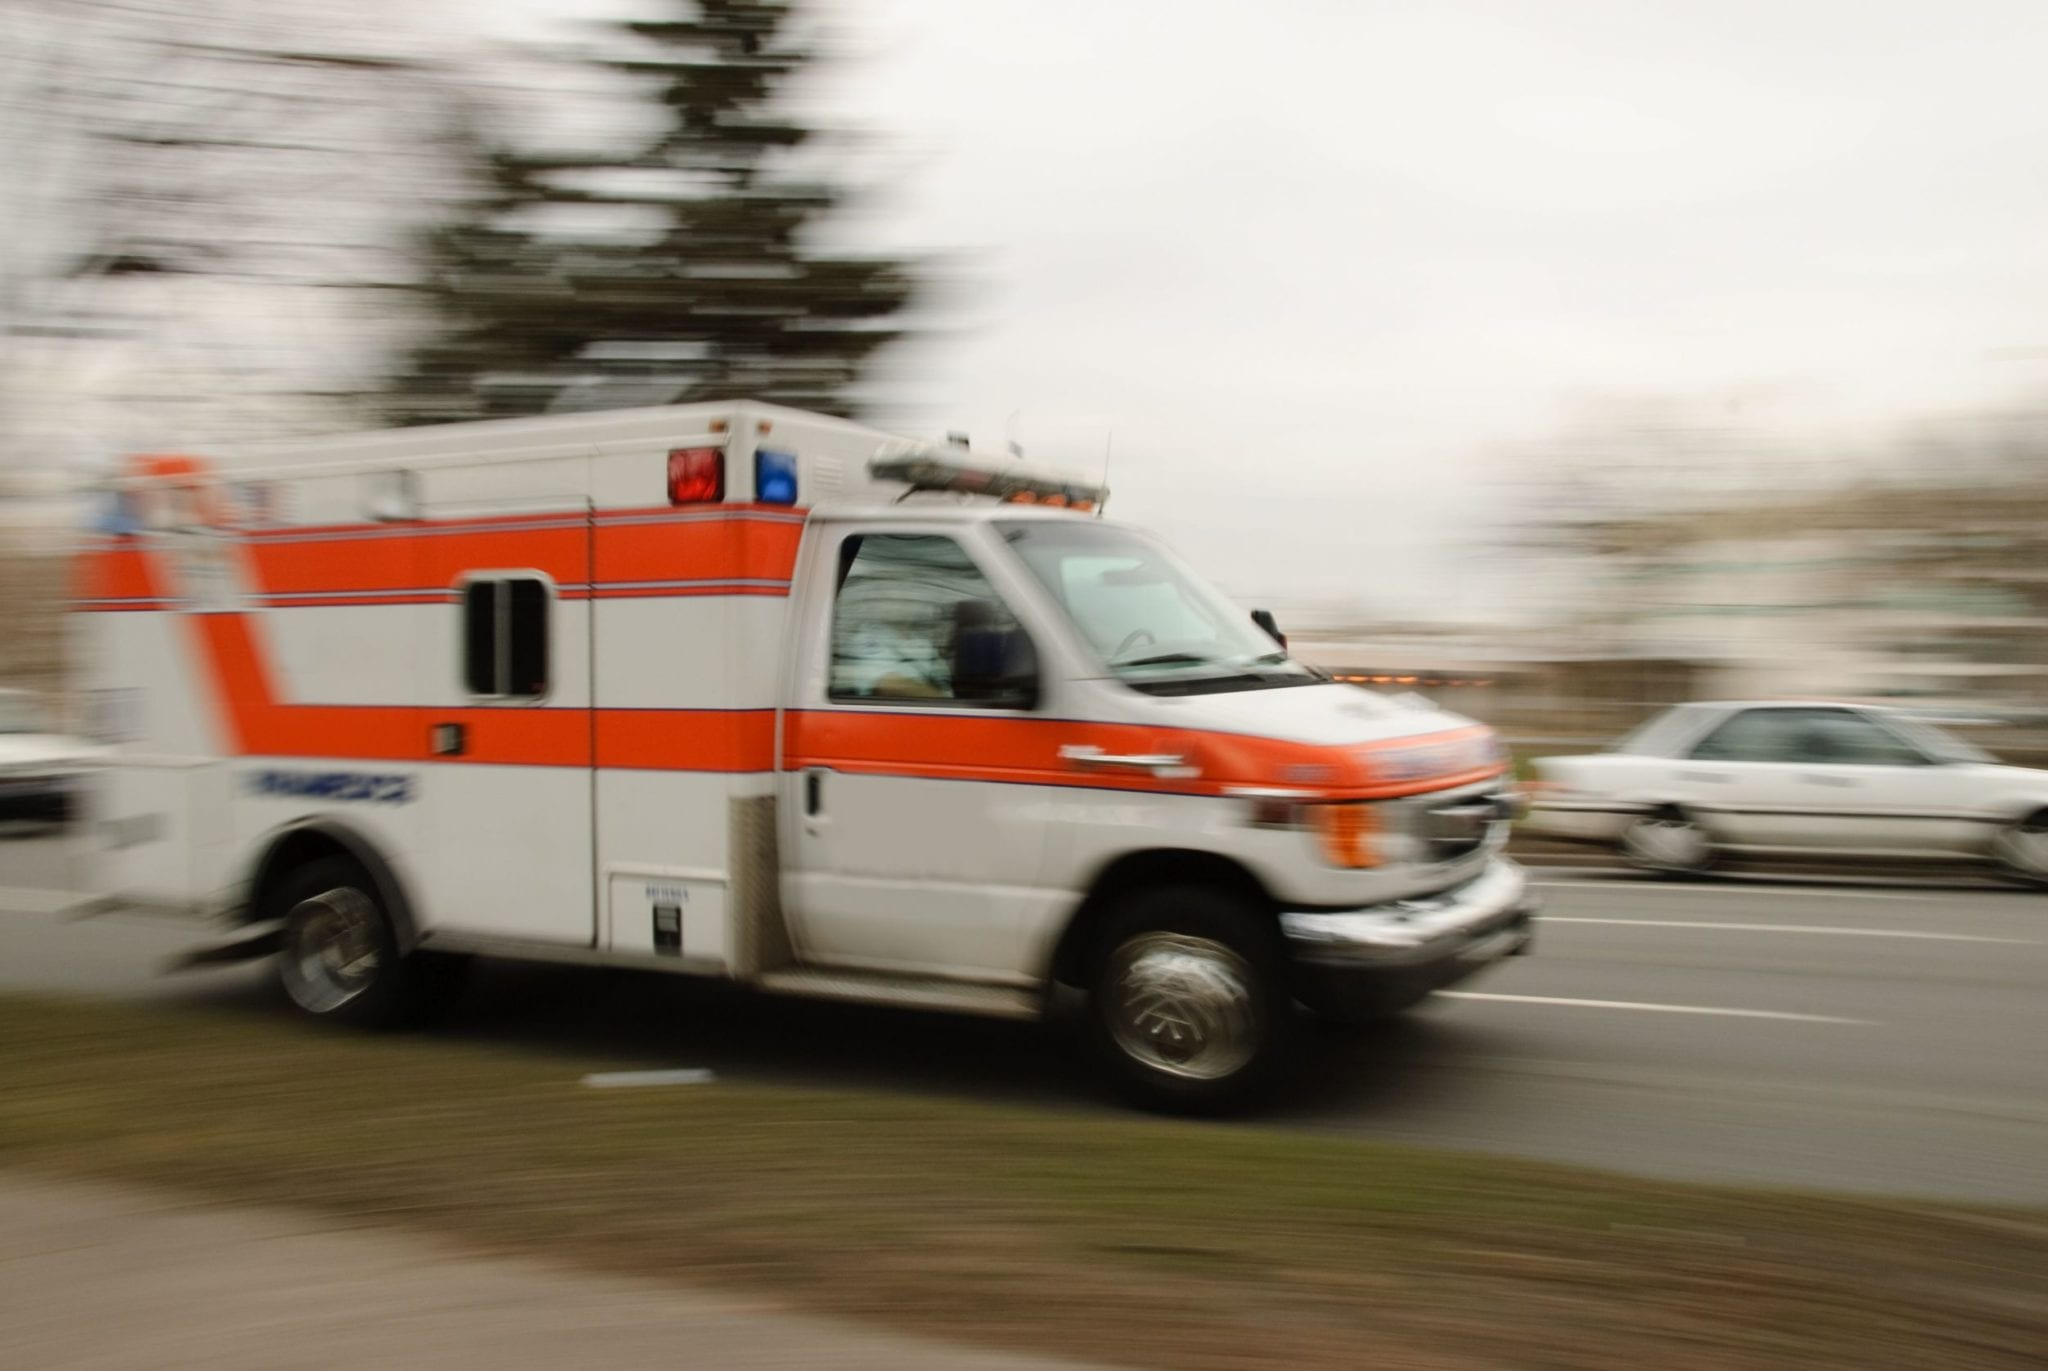 Ambulance Responding To An Accident Stock Photo